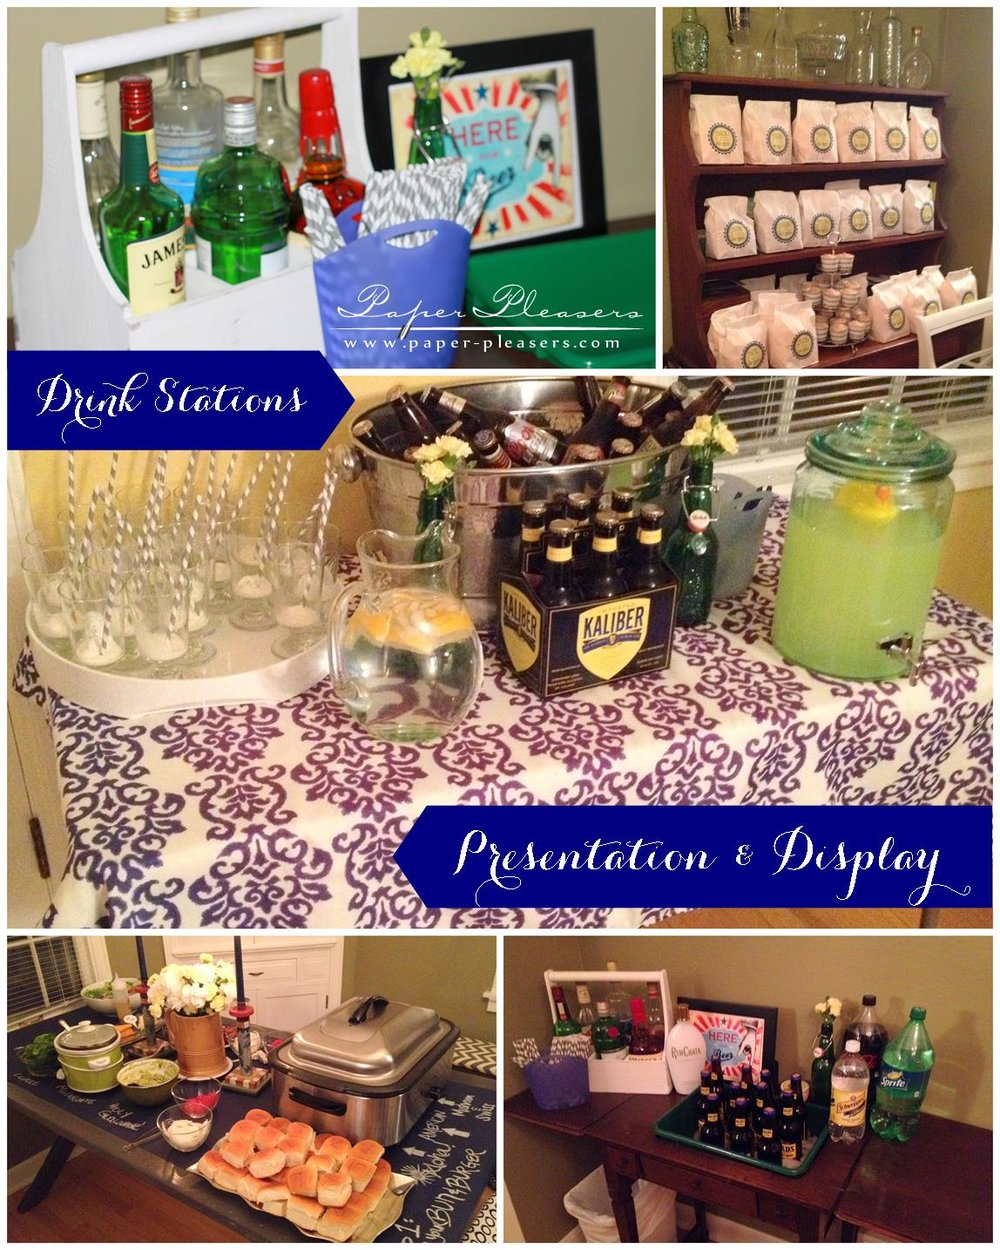 PaperPleasers_BabyShower_Presentation+Display.jpg